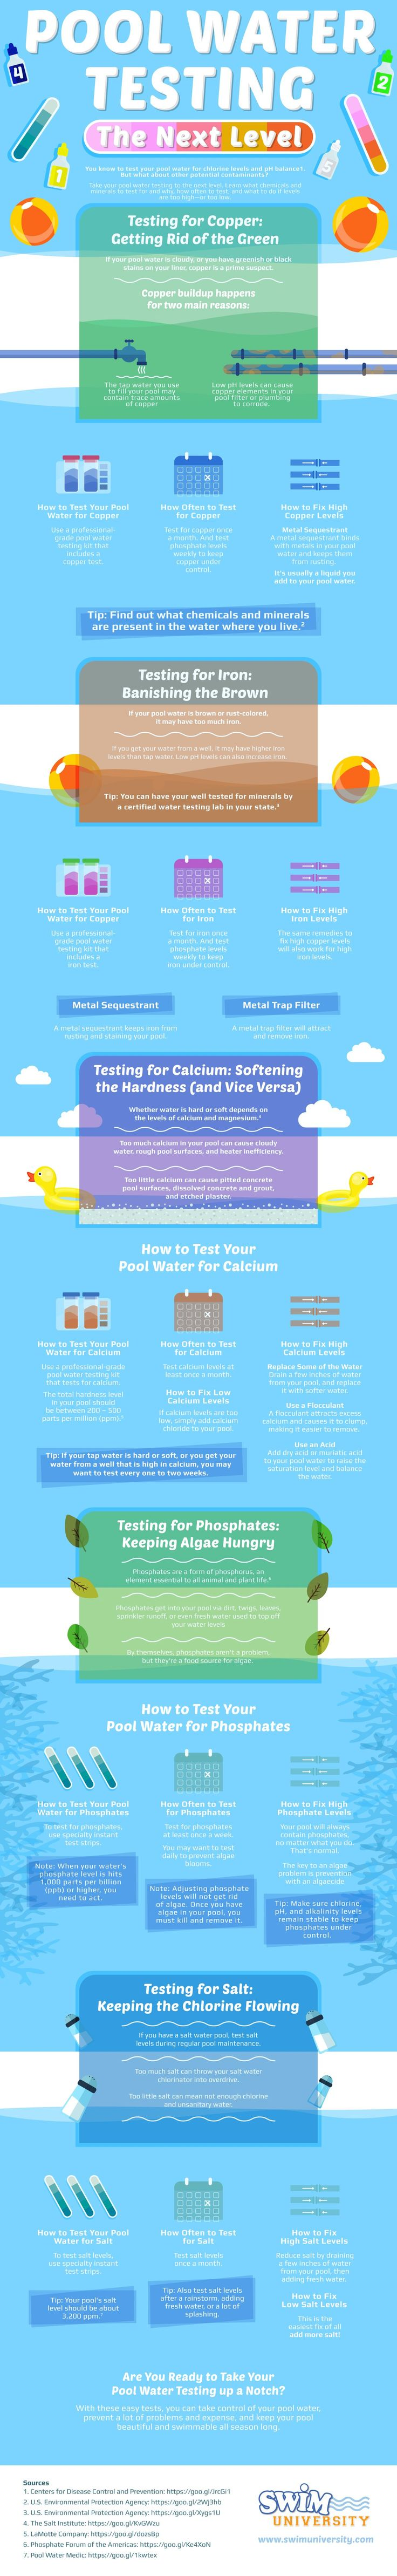 You've opened your pool, and you're looking forward to long, lazy afternoons relaxing in the crystal clear water. Or maybe you're planning a big pool party for friends and family. But is your pool ready? The best way to know is to test your pool water.